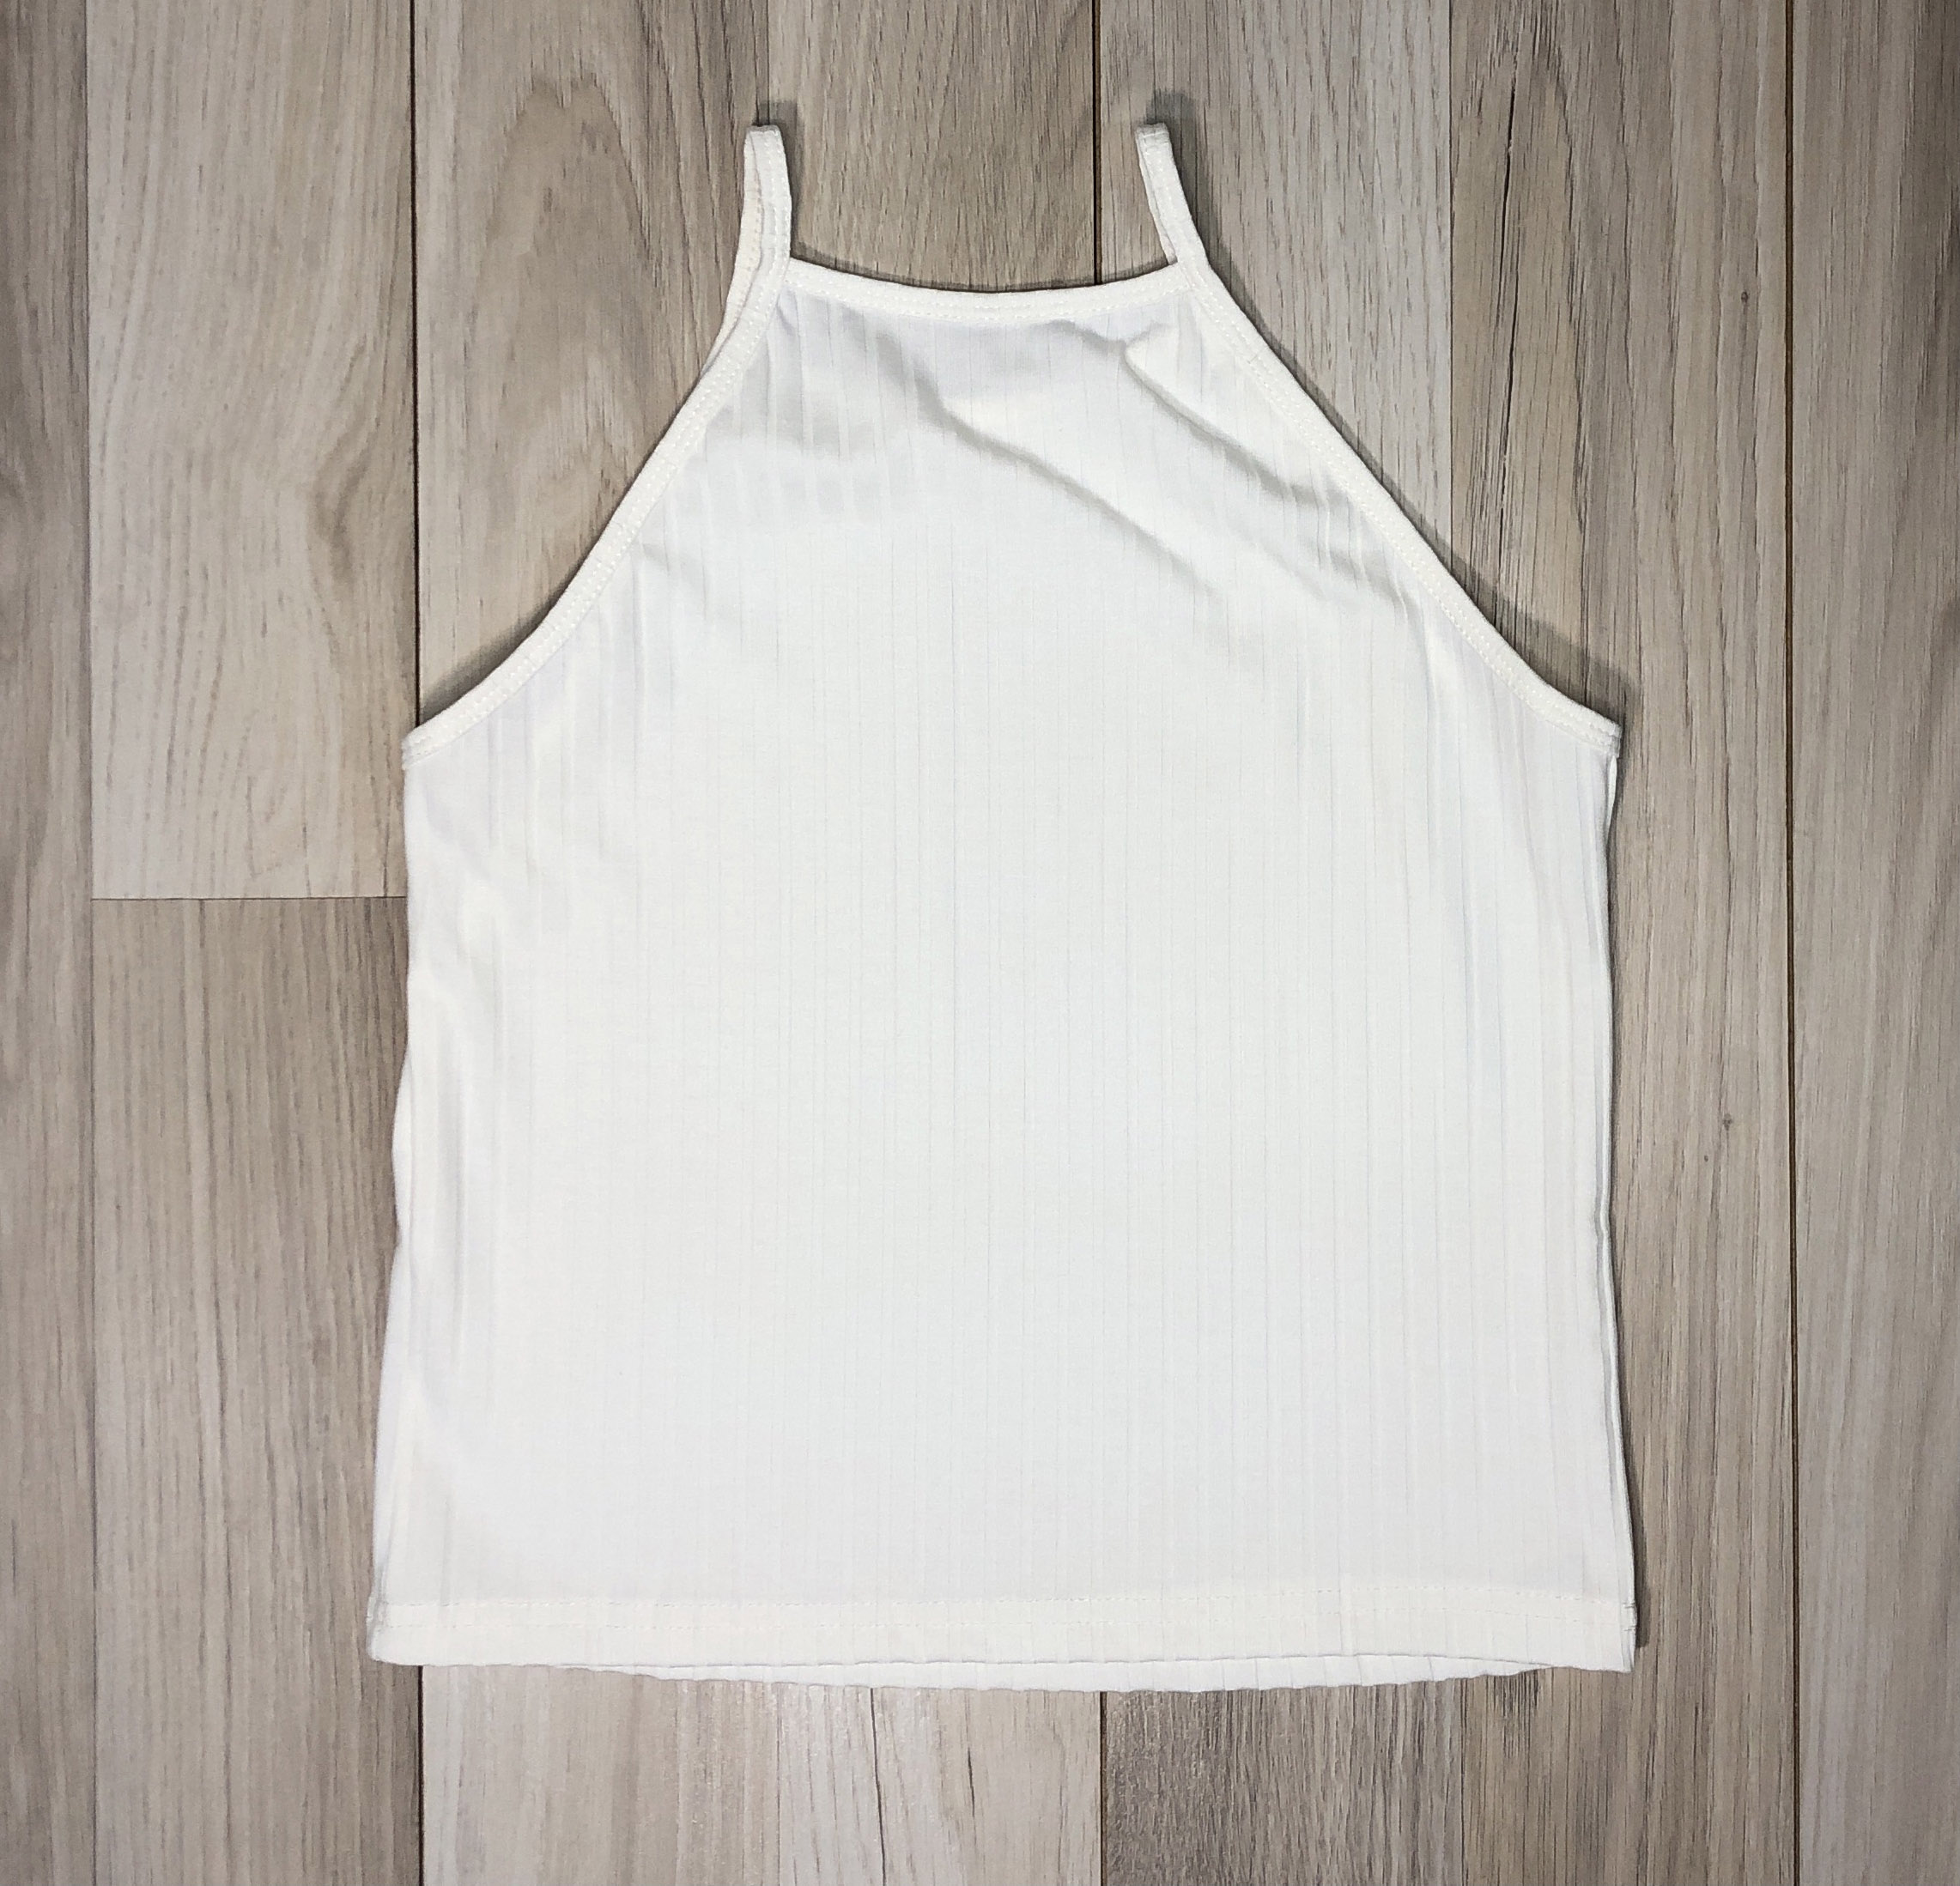 Top Crop Blanco escote alto Diseño lineal